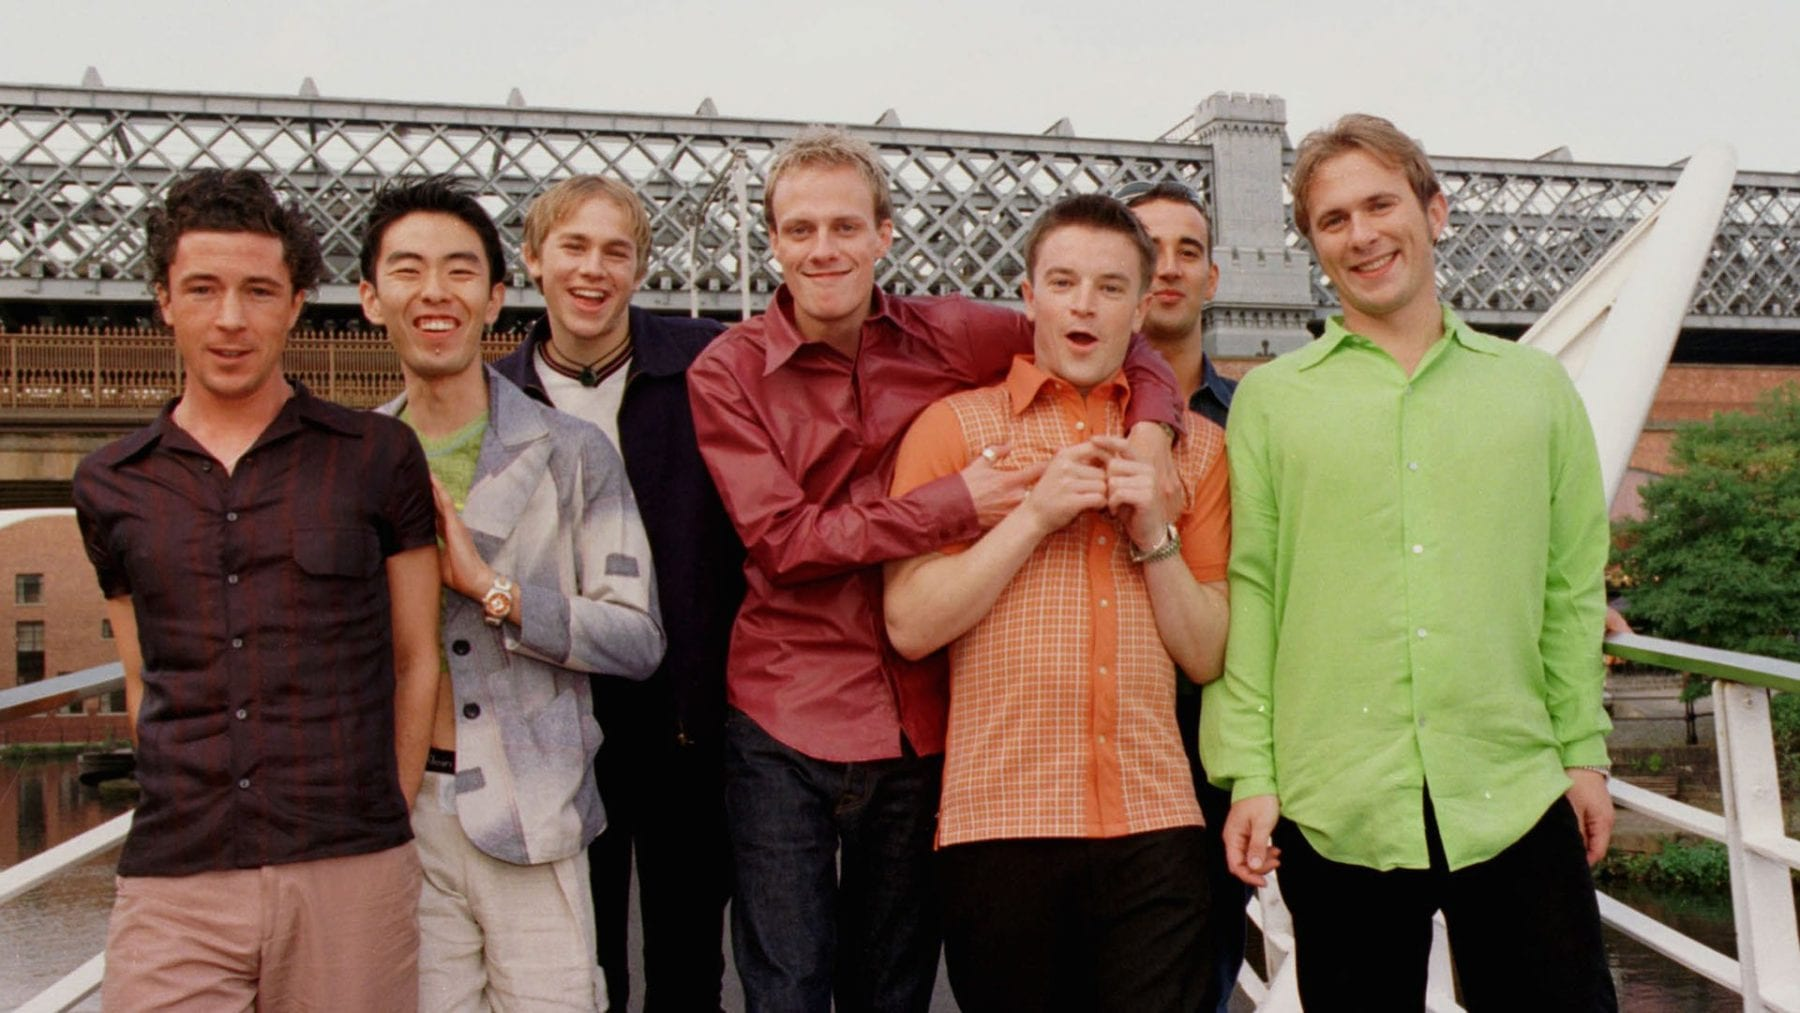 The cast of the 1999 Channel 4 show Queer As Folk